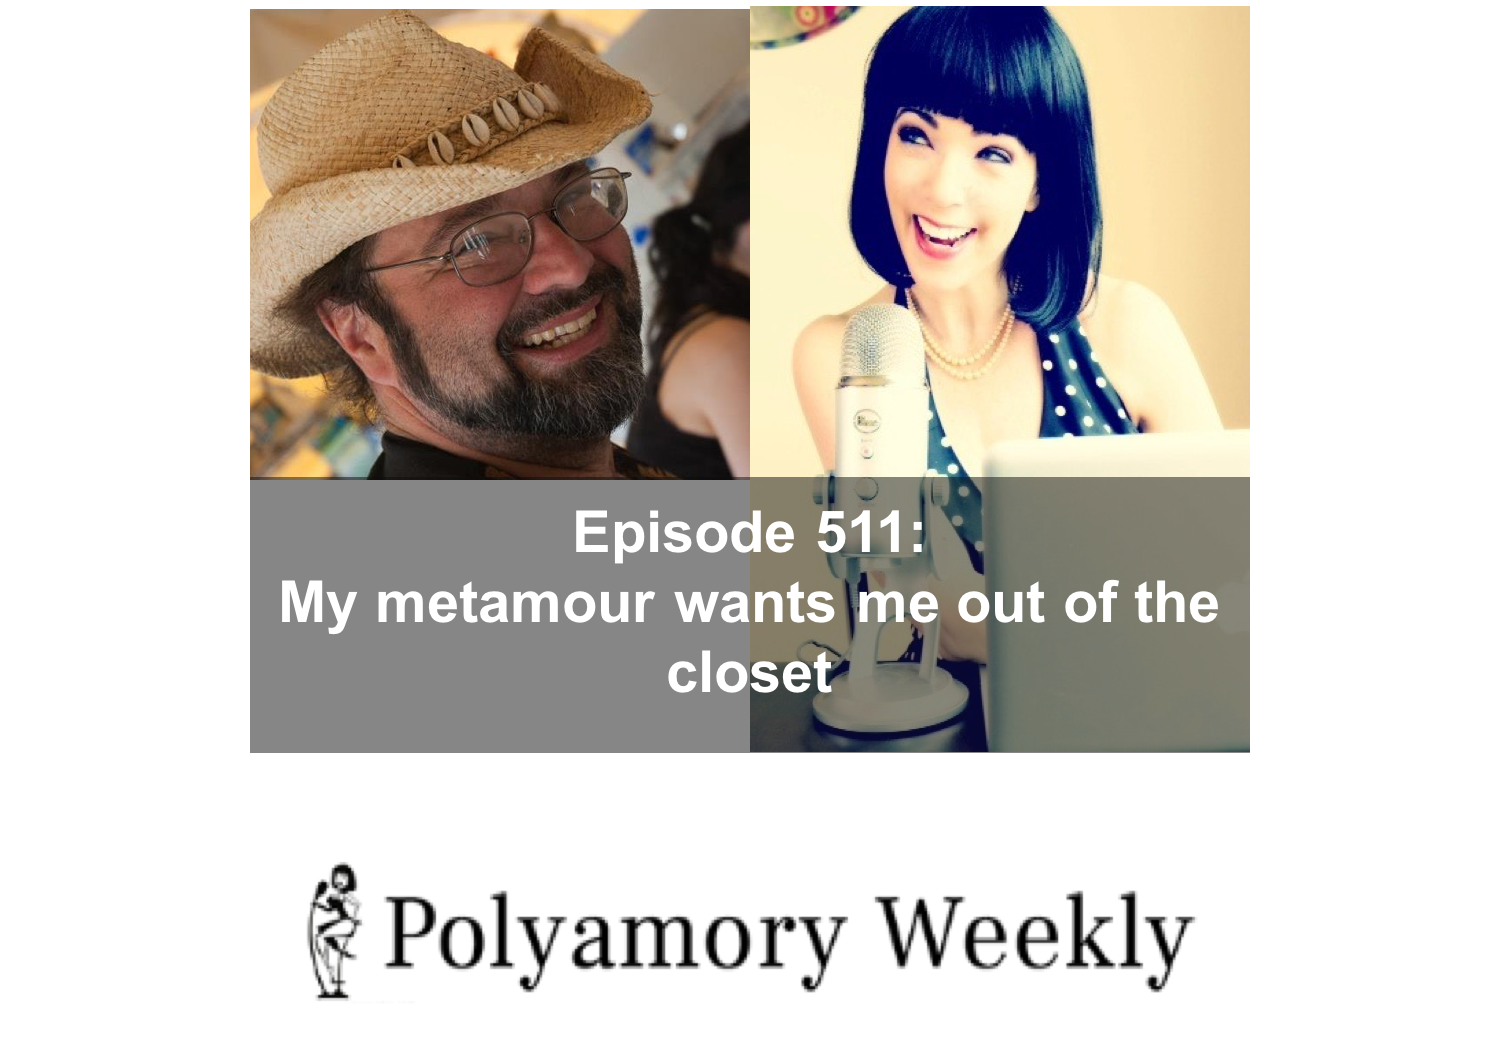 511: My metamour wants me to be out of the closet